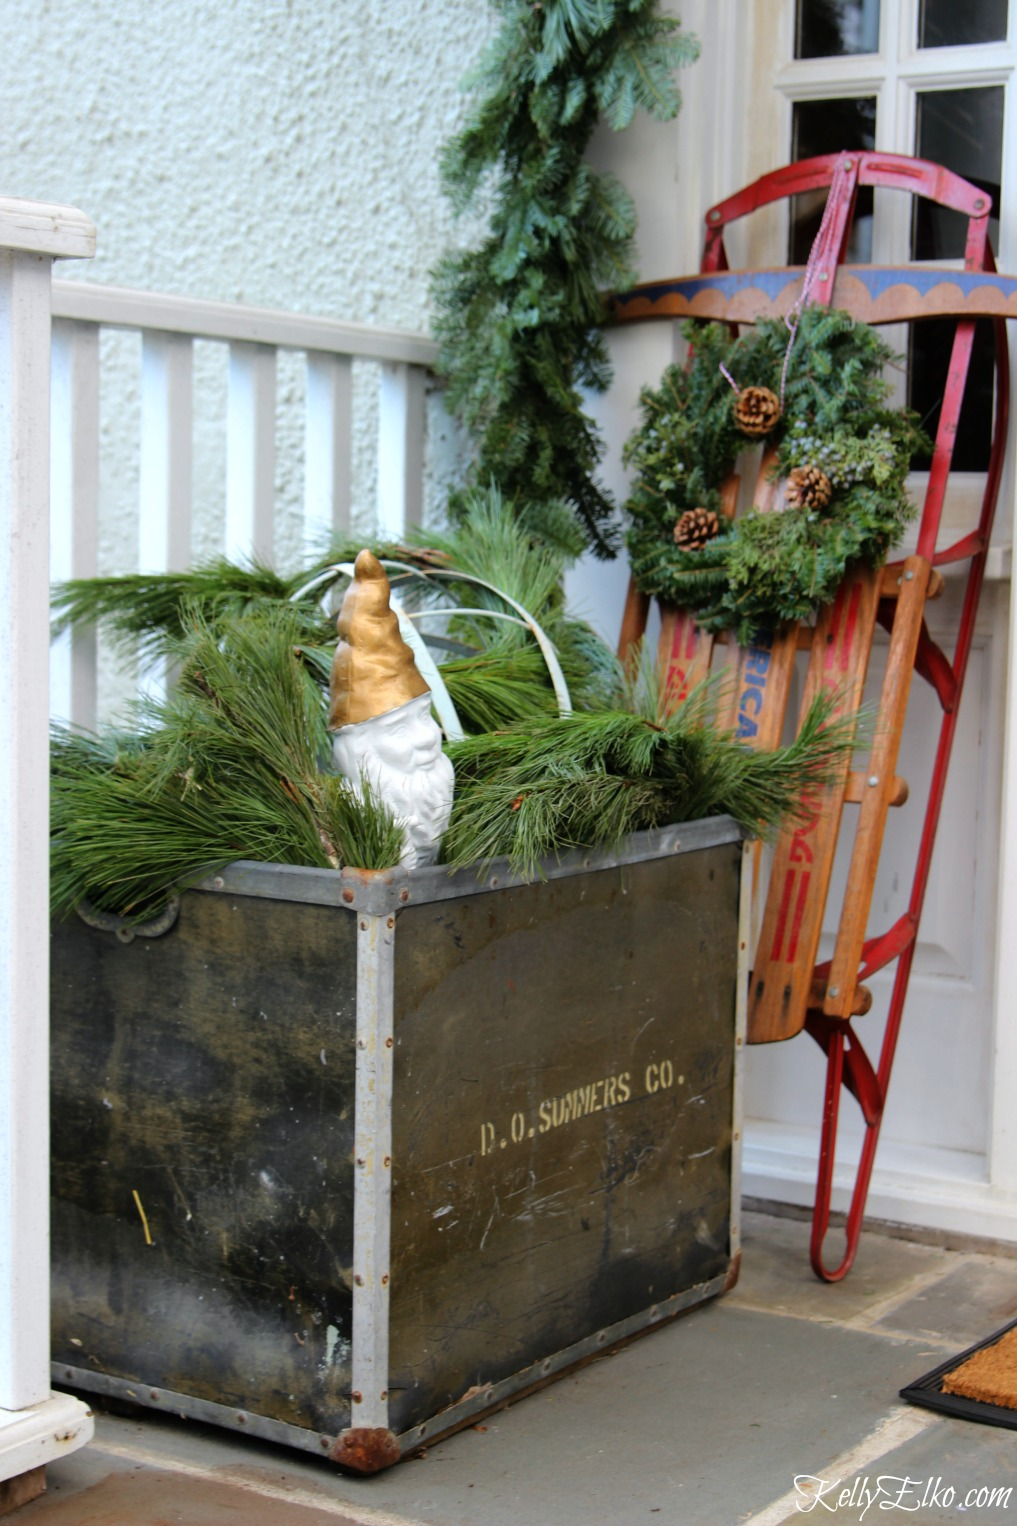 Vintage Christmas porch decorating ideas - love using a big metal container to hold sprigs of fresh greenery kellyelko.com #christmasporch #christmasdecor #outdoorchristmasdecor #vintagechristmas #sled #kellyelko #christmaswreath